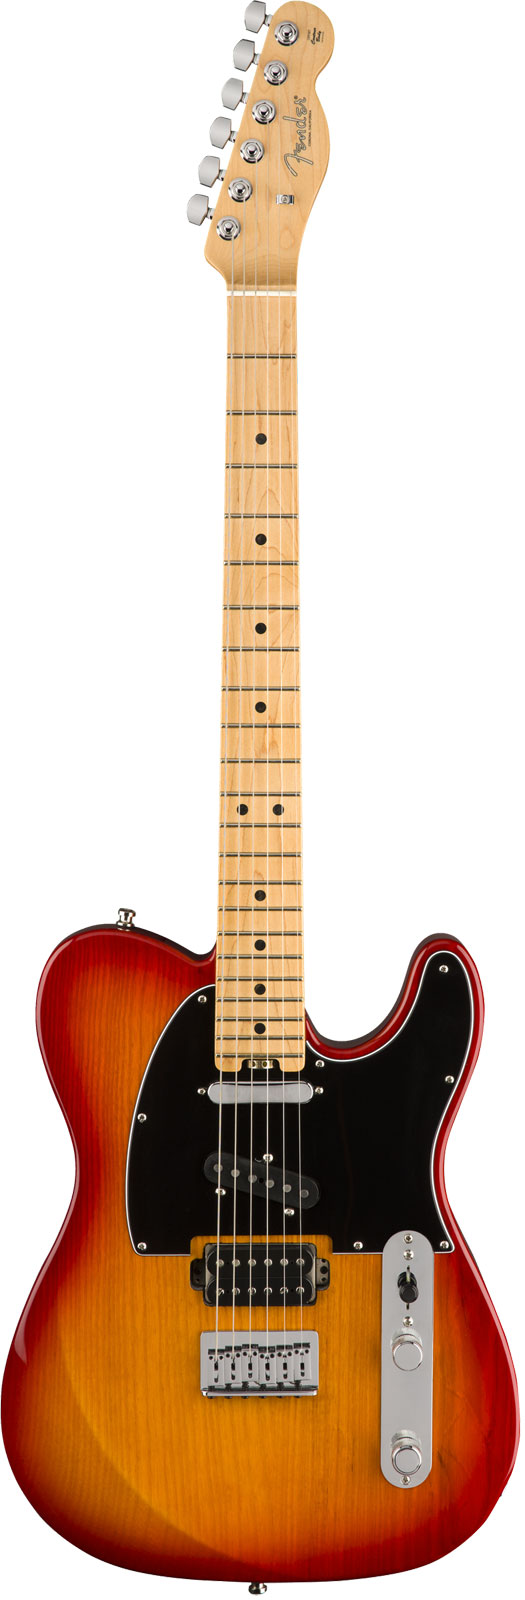 Fender Am Elite Nashville Telecaster Mn Aged Cherry Burst